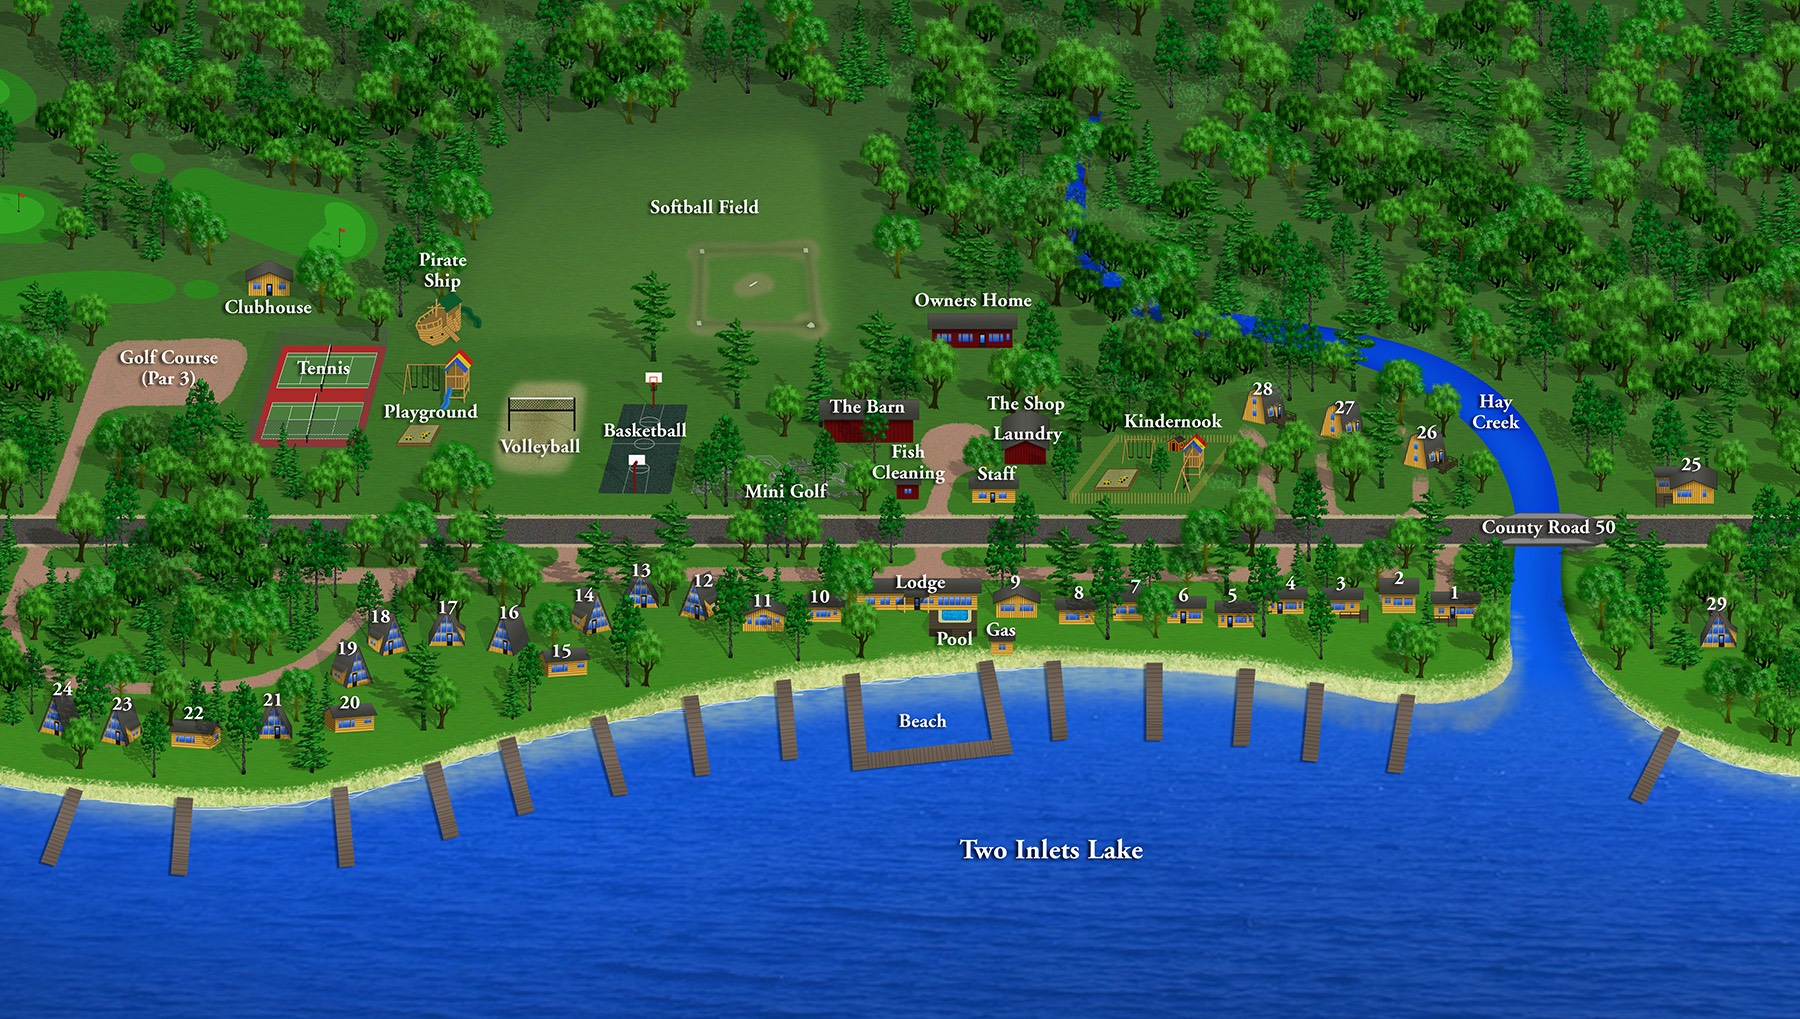 Brookside Resort grounds layout